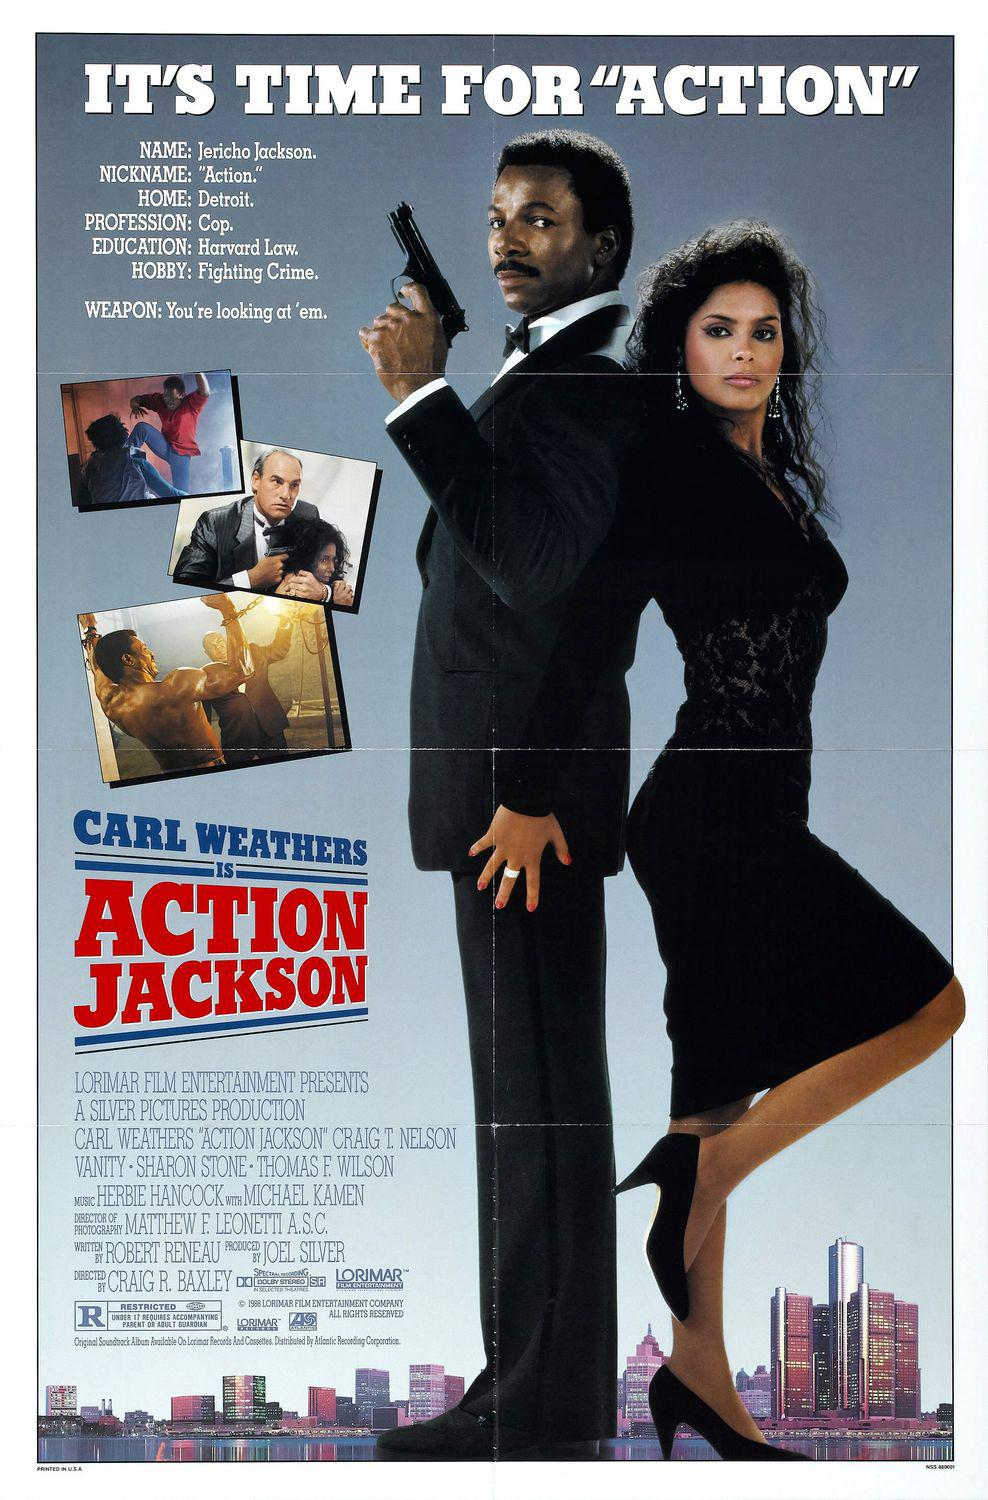 Action Jackson - Carl Weathers